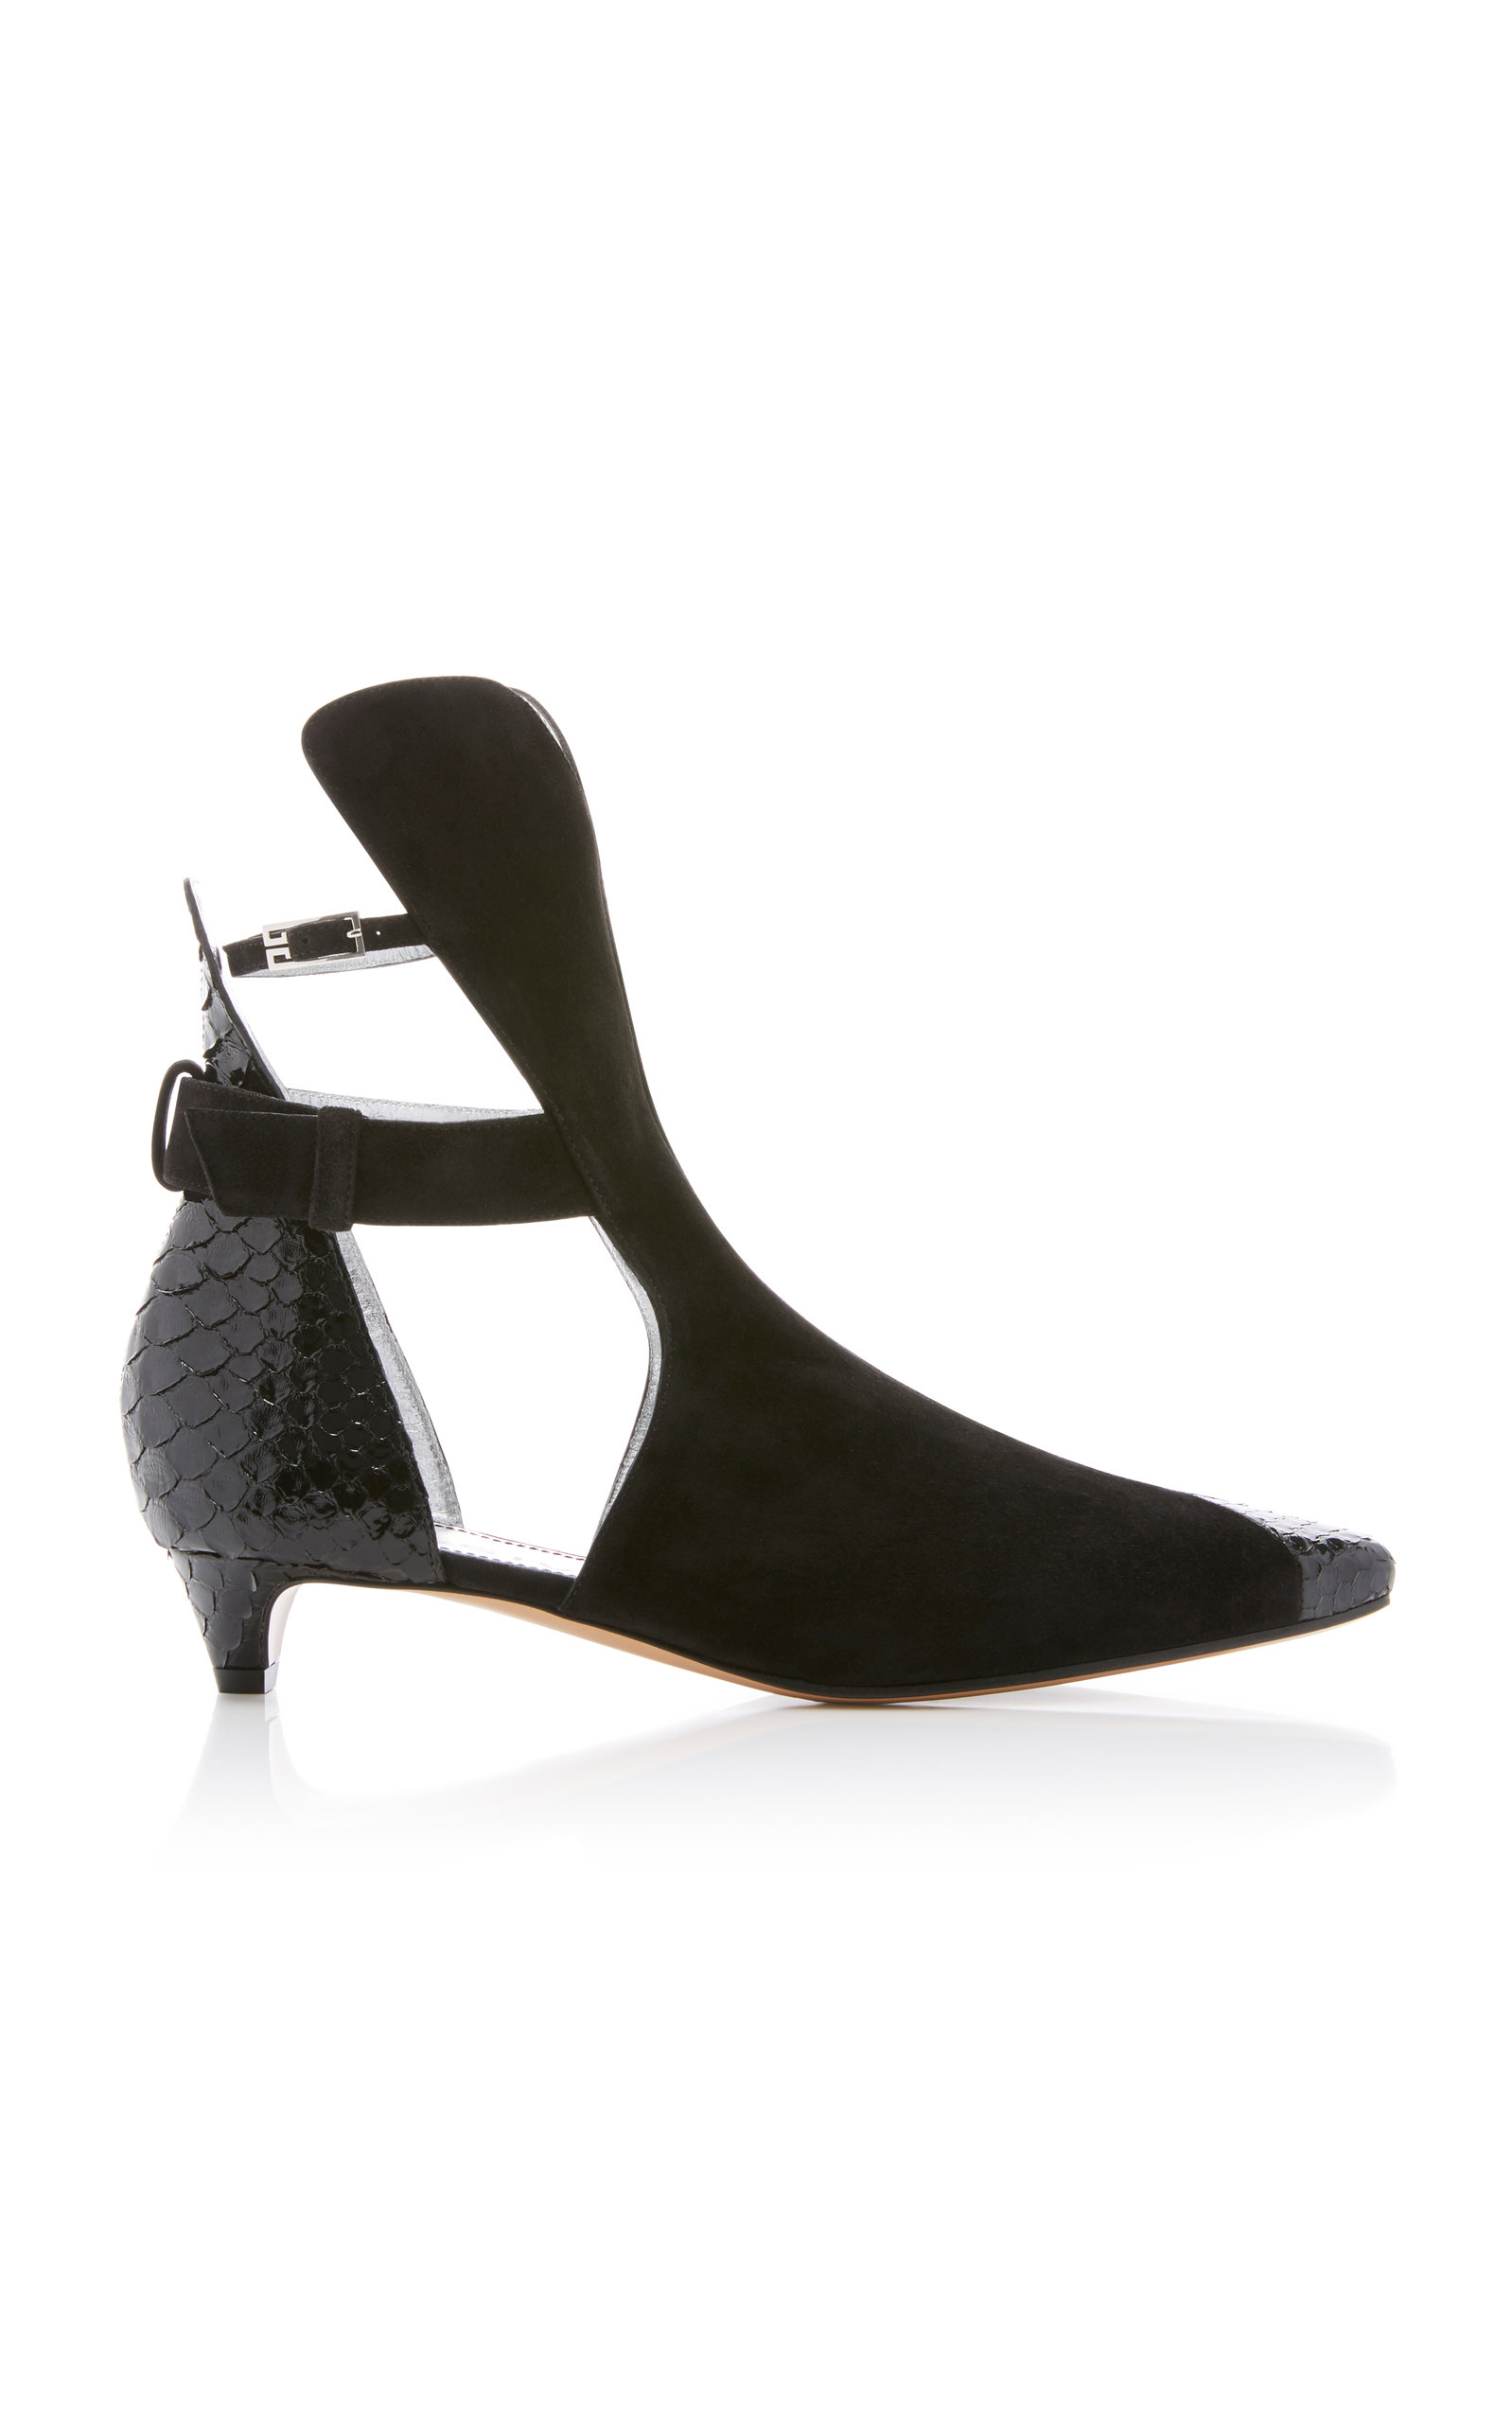 Givenchy Show Python and Suede Ankle Boot SBOqXyjWe